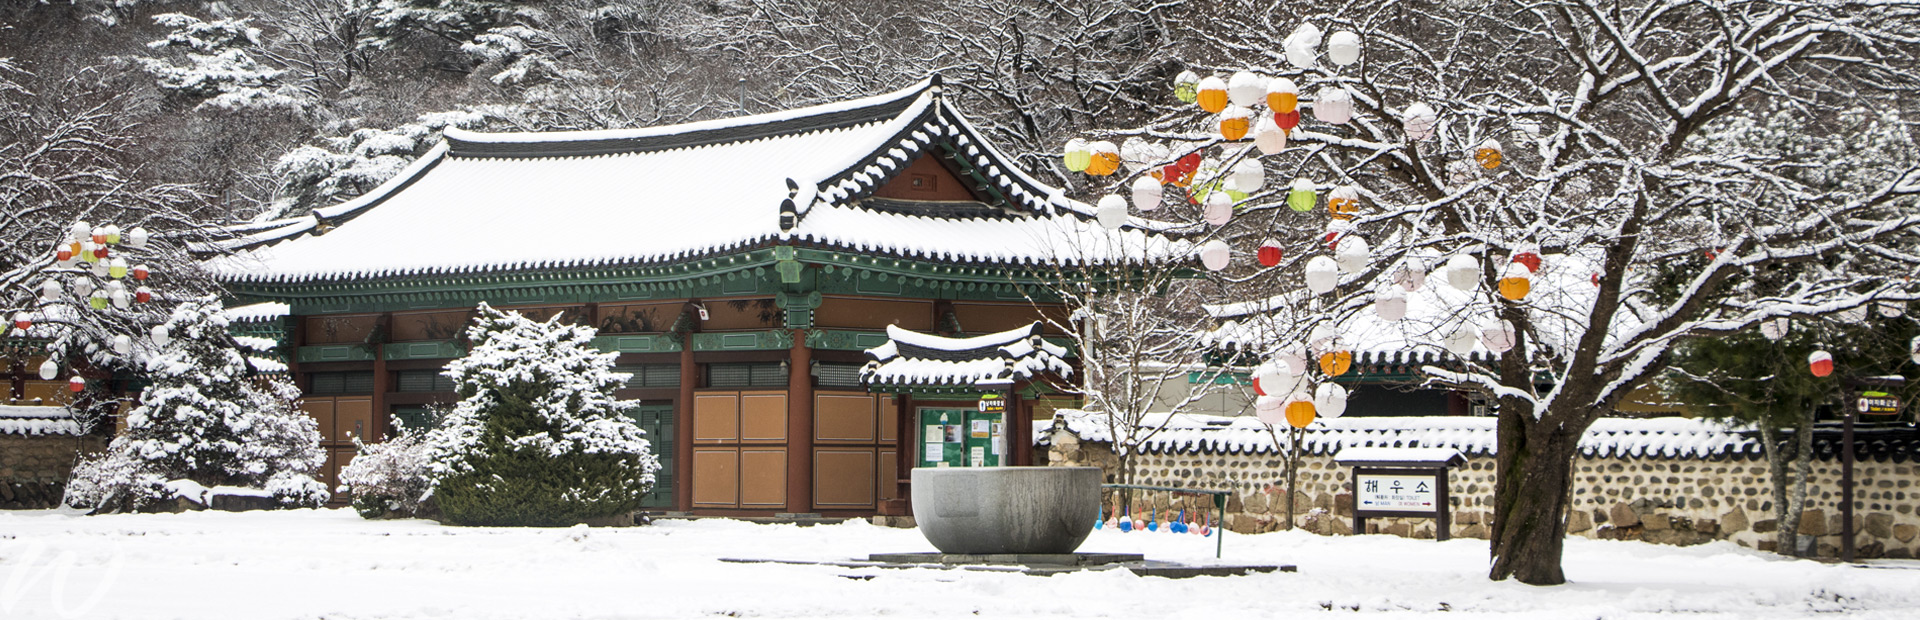 South-Korea-Winter-Wonderland, winter Olympics